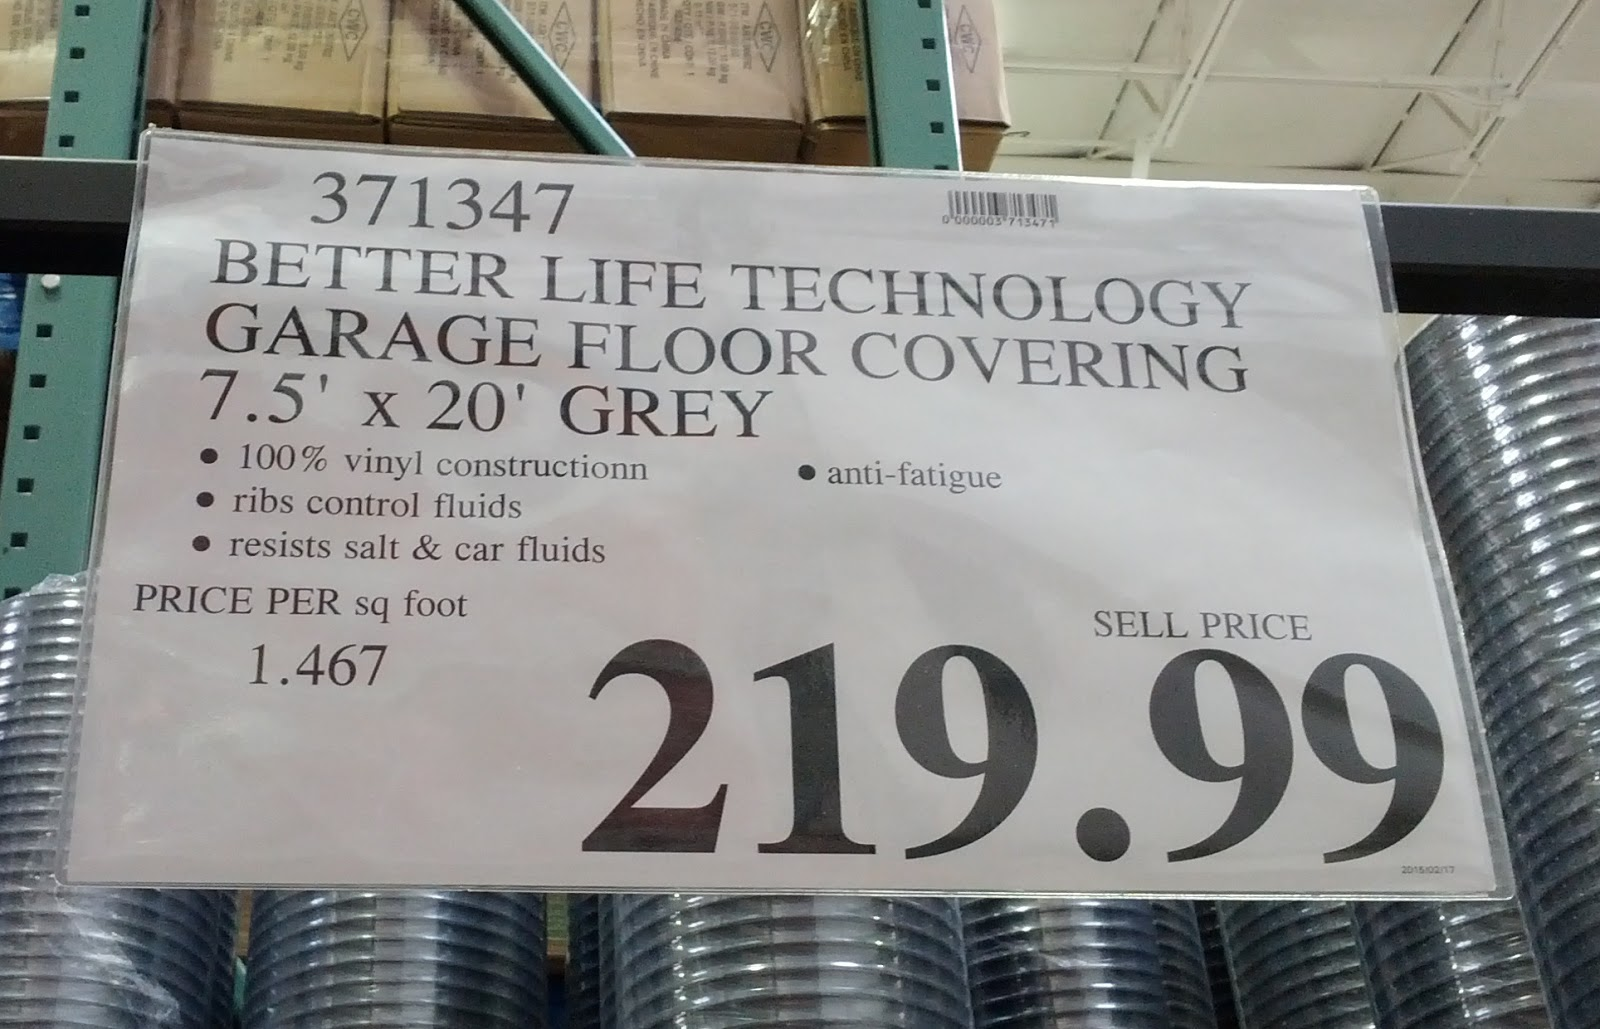 Better Life Technology Gfloor Garage Flooring Covering. Gliding Patio Doors. Door Closet. Driver Side Door Replacement. 1 Hp Garage Door Opener. Arvada Garage Door Repair. Dc Garage Doors. Guardian Garage Door Openers. Texas Overhead Door